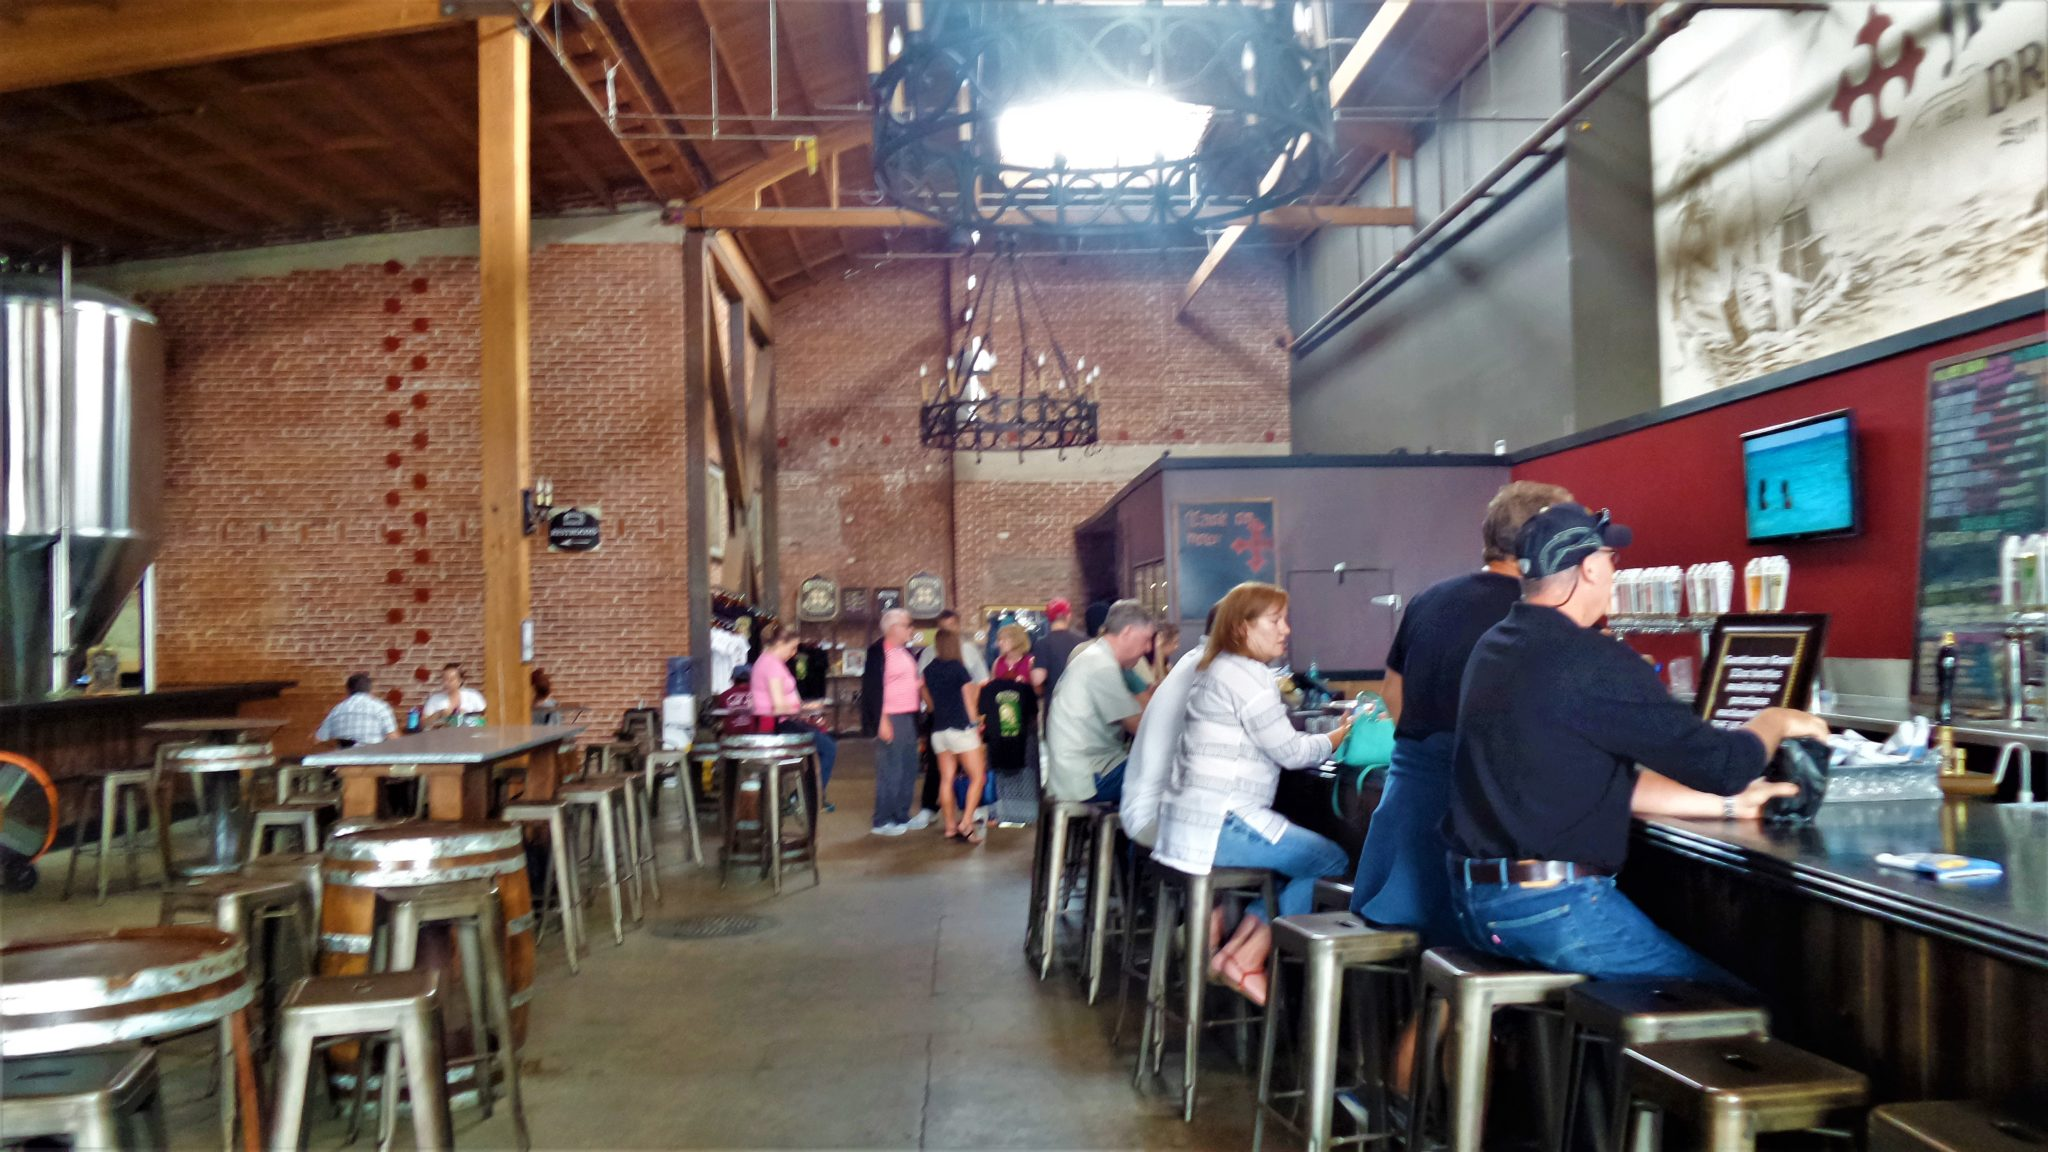 Mission Brewery bar, things to do in San Diego, California